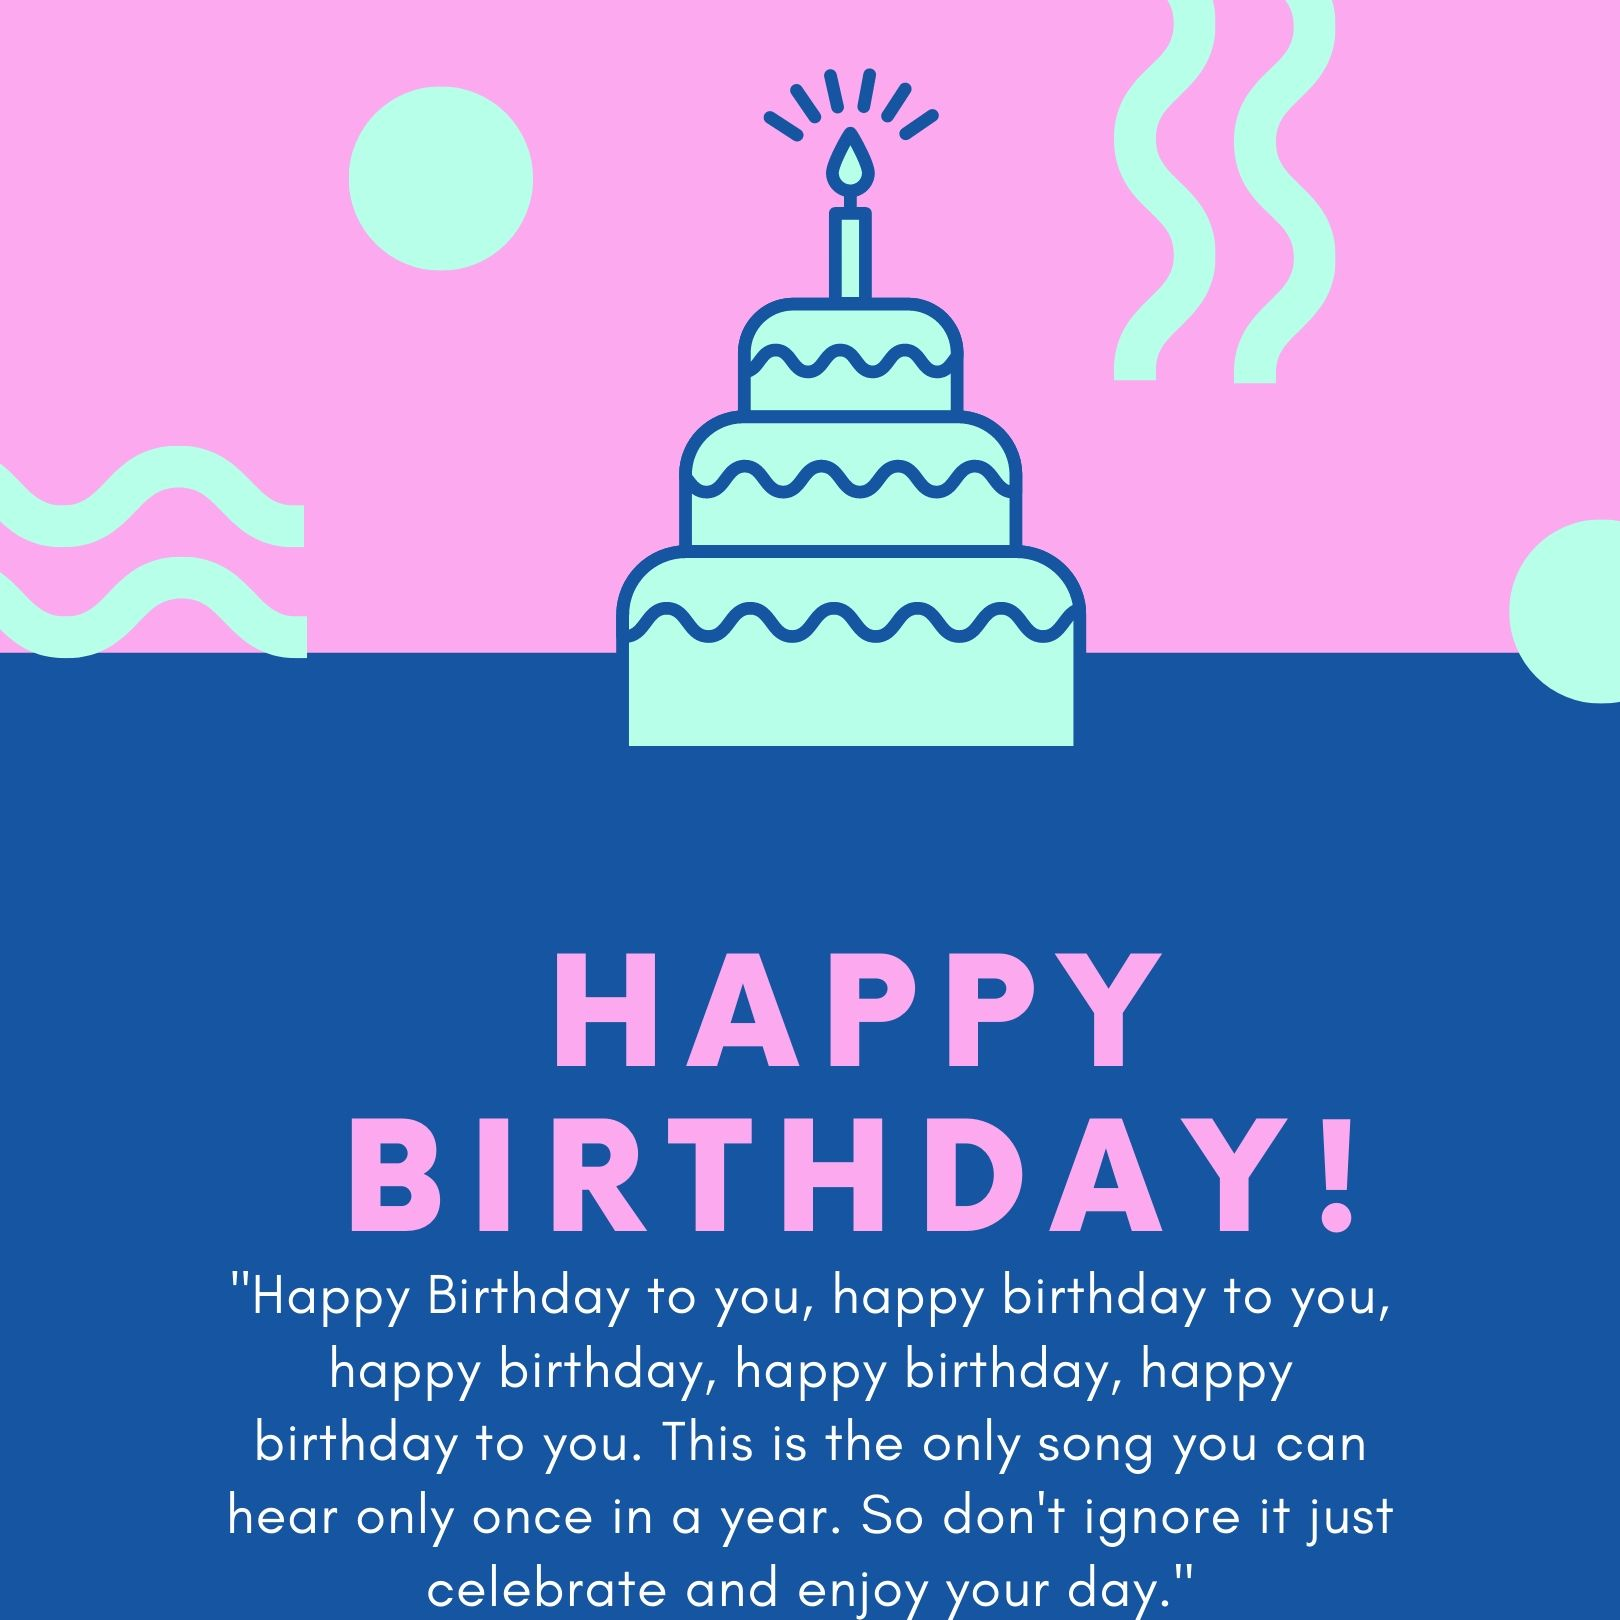 Happy Birthday Wishes For Everyone Simplify The Blogging Way